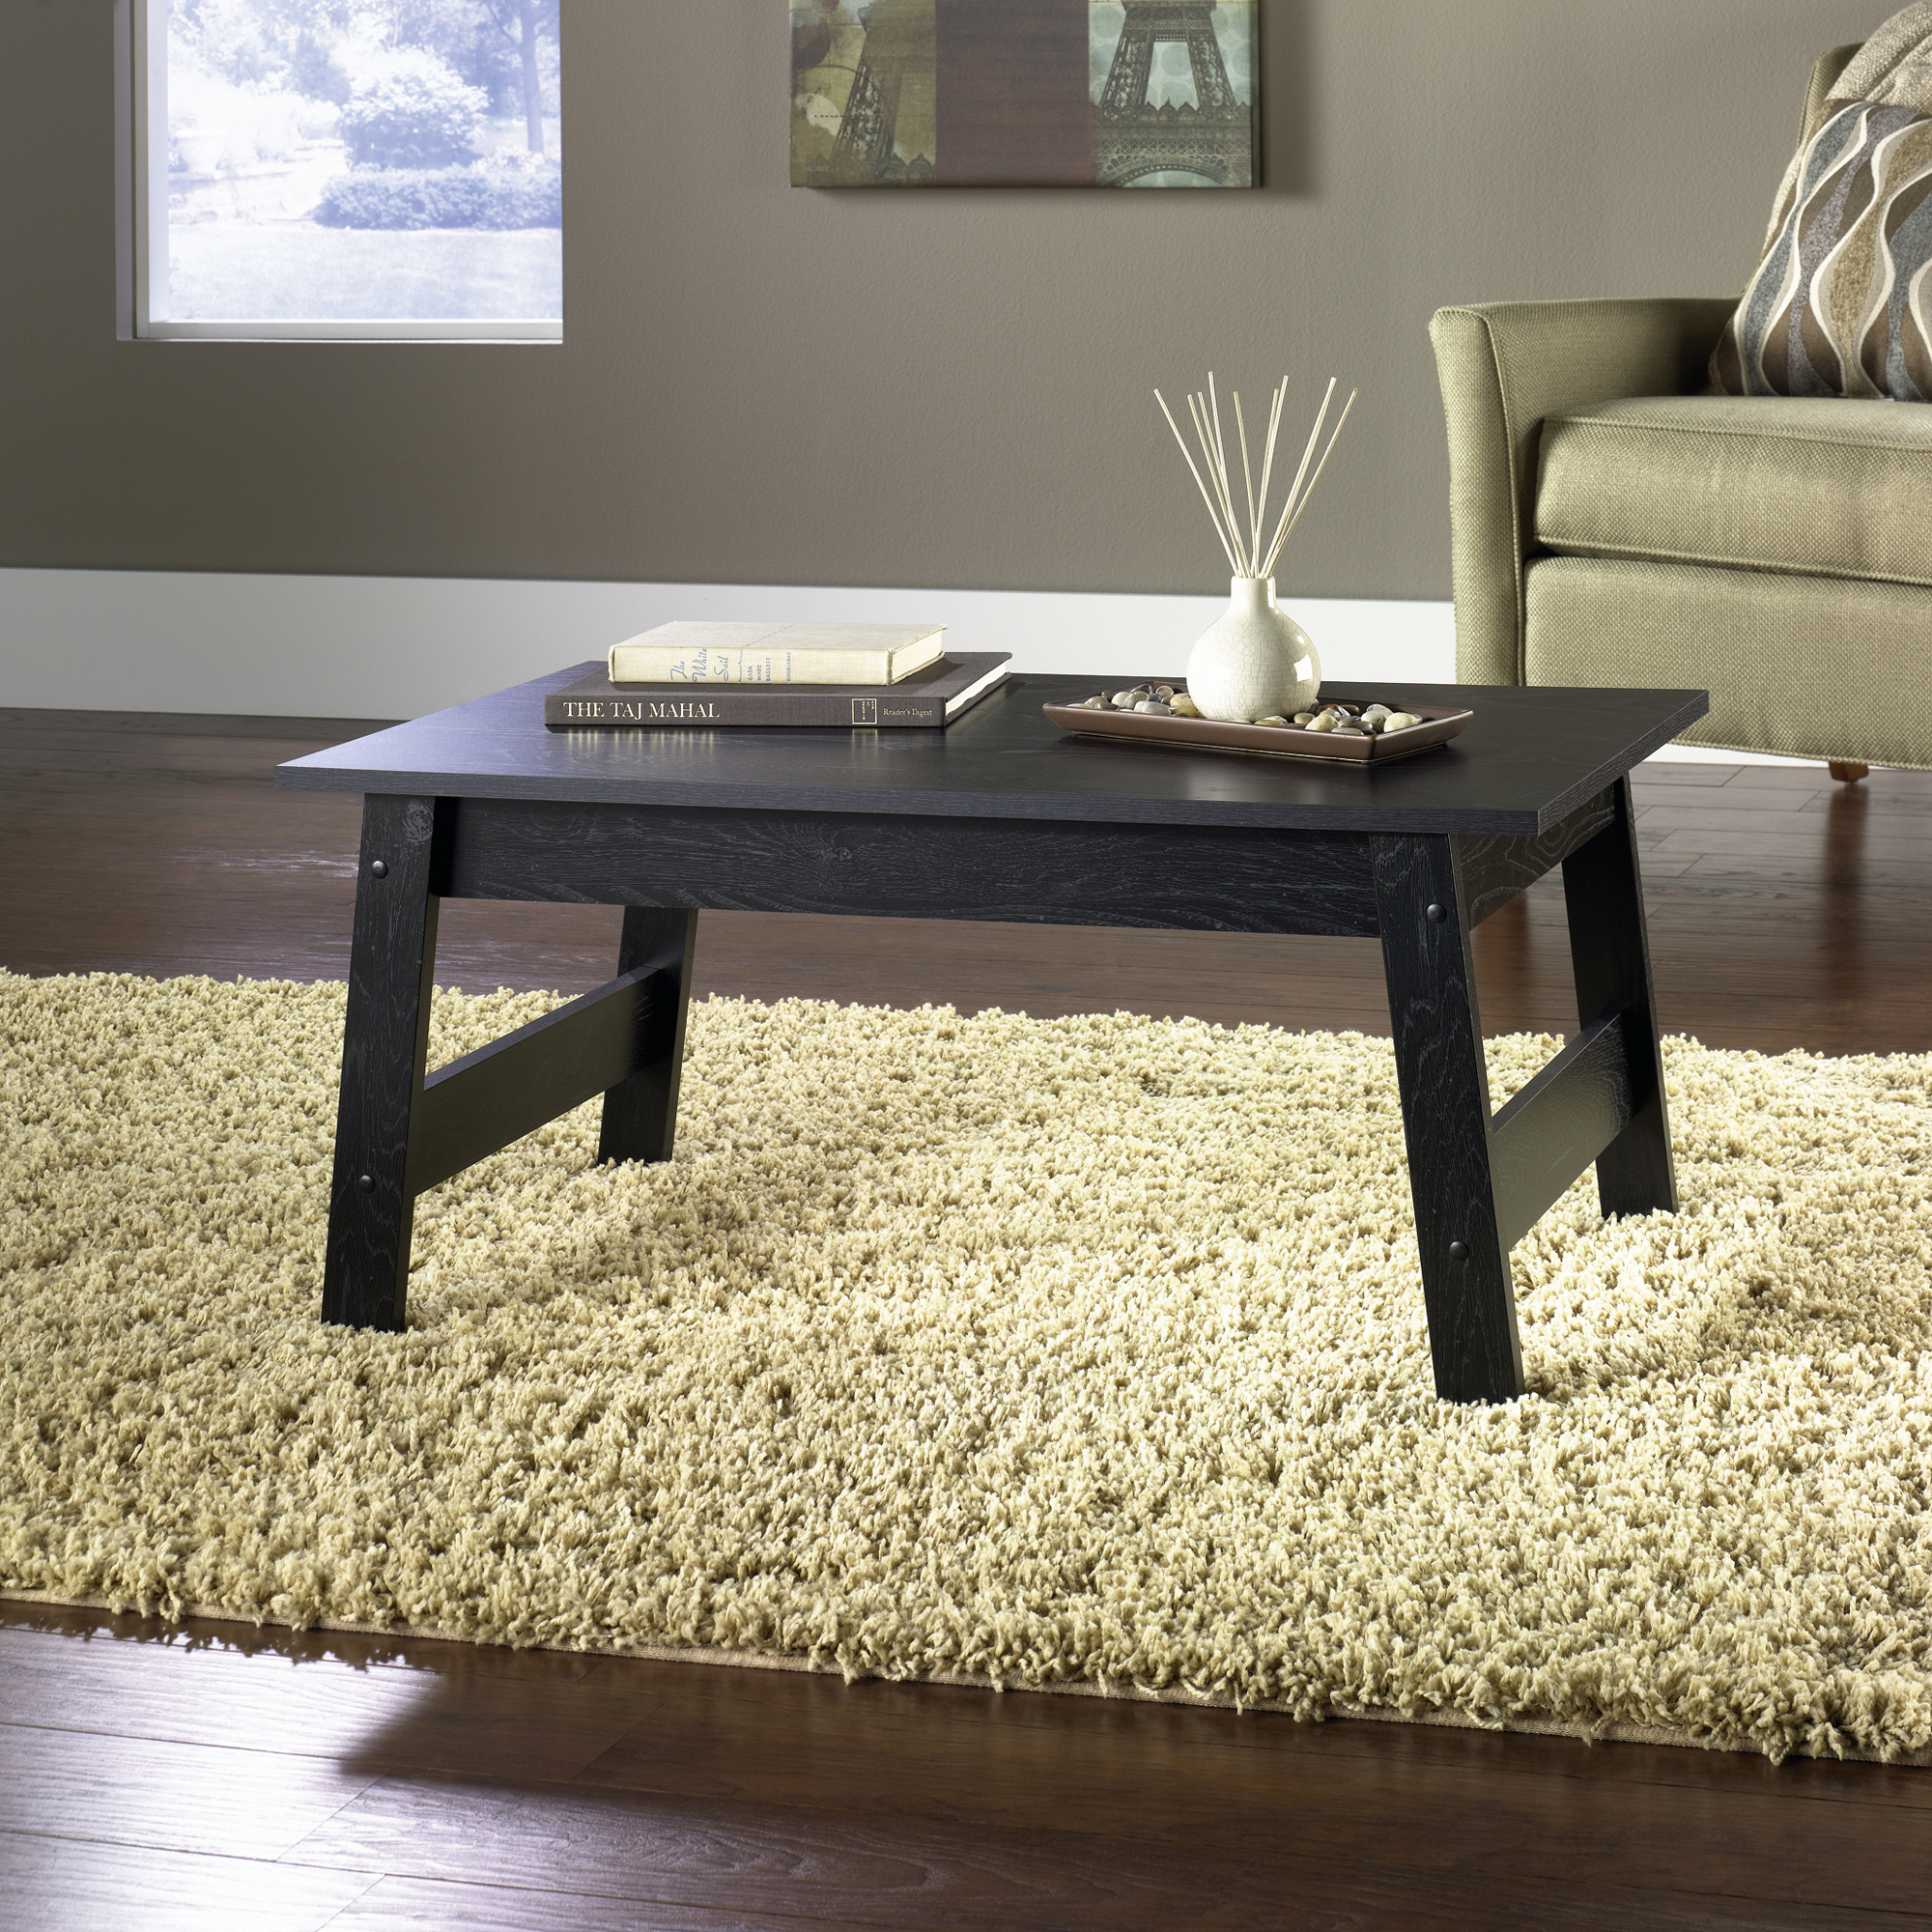 mainstays coffee table black oak finish end espresso stanley furniture direct inch glass patio diy dog kennel ideas ashley signature dining chairs extra large indoor pen ethan